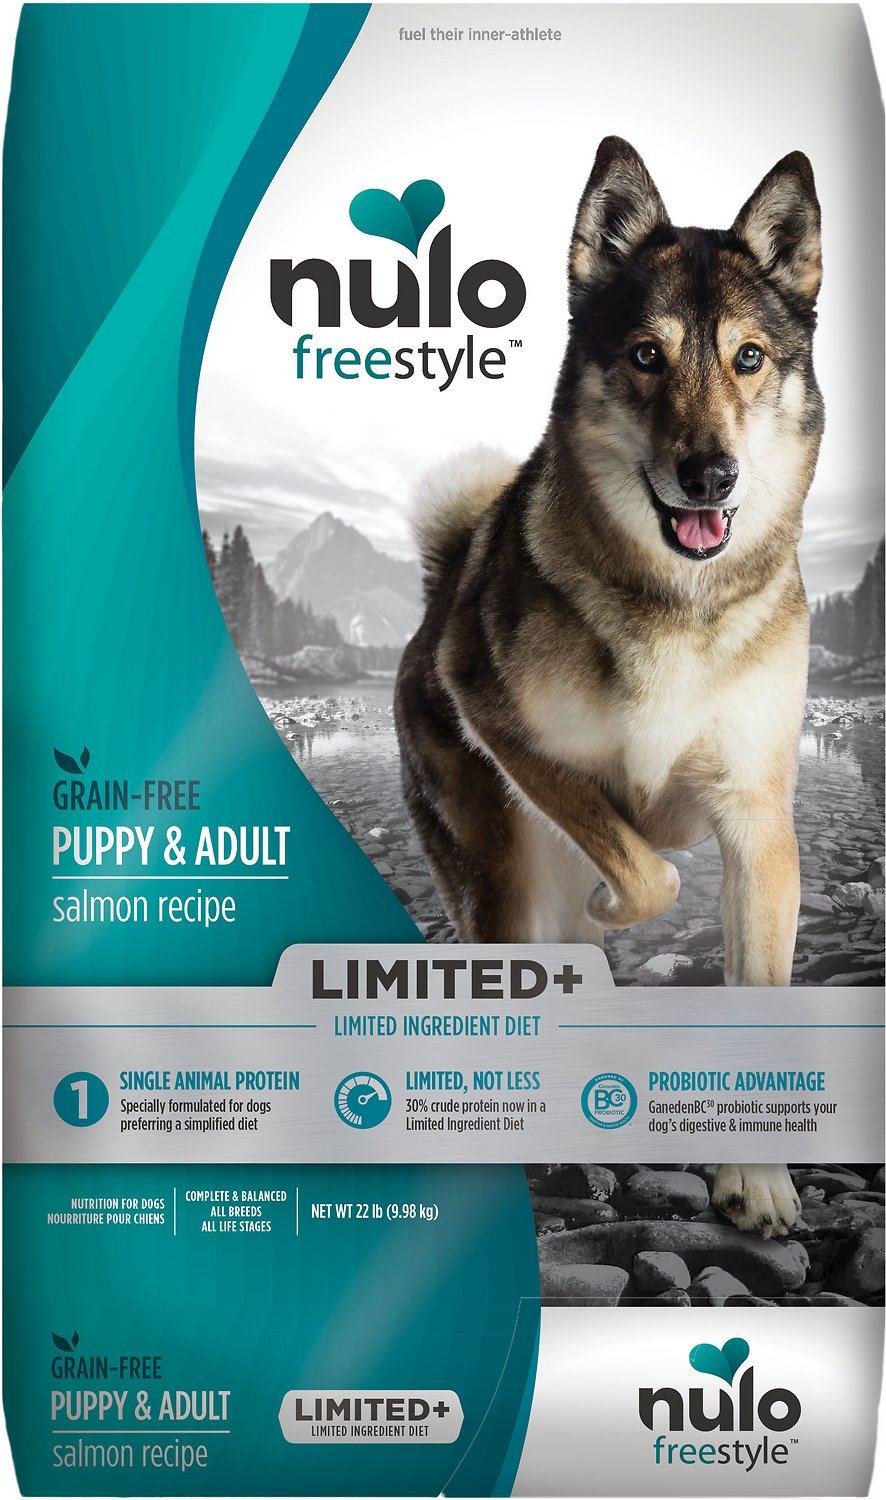 Nulo Dog Freestyle Limited+ Salmon Recipe Grain-Free Puppy & Adult Dry Dog Food Image